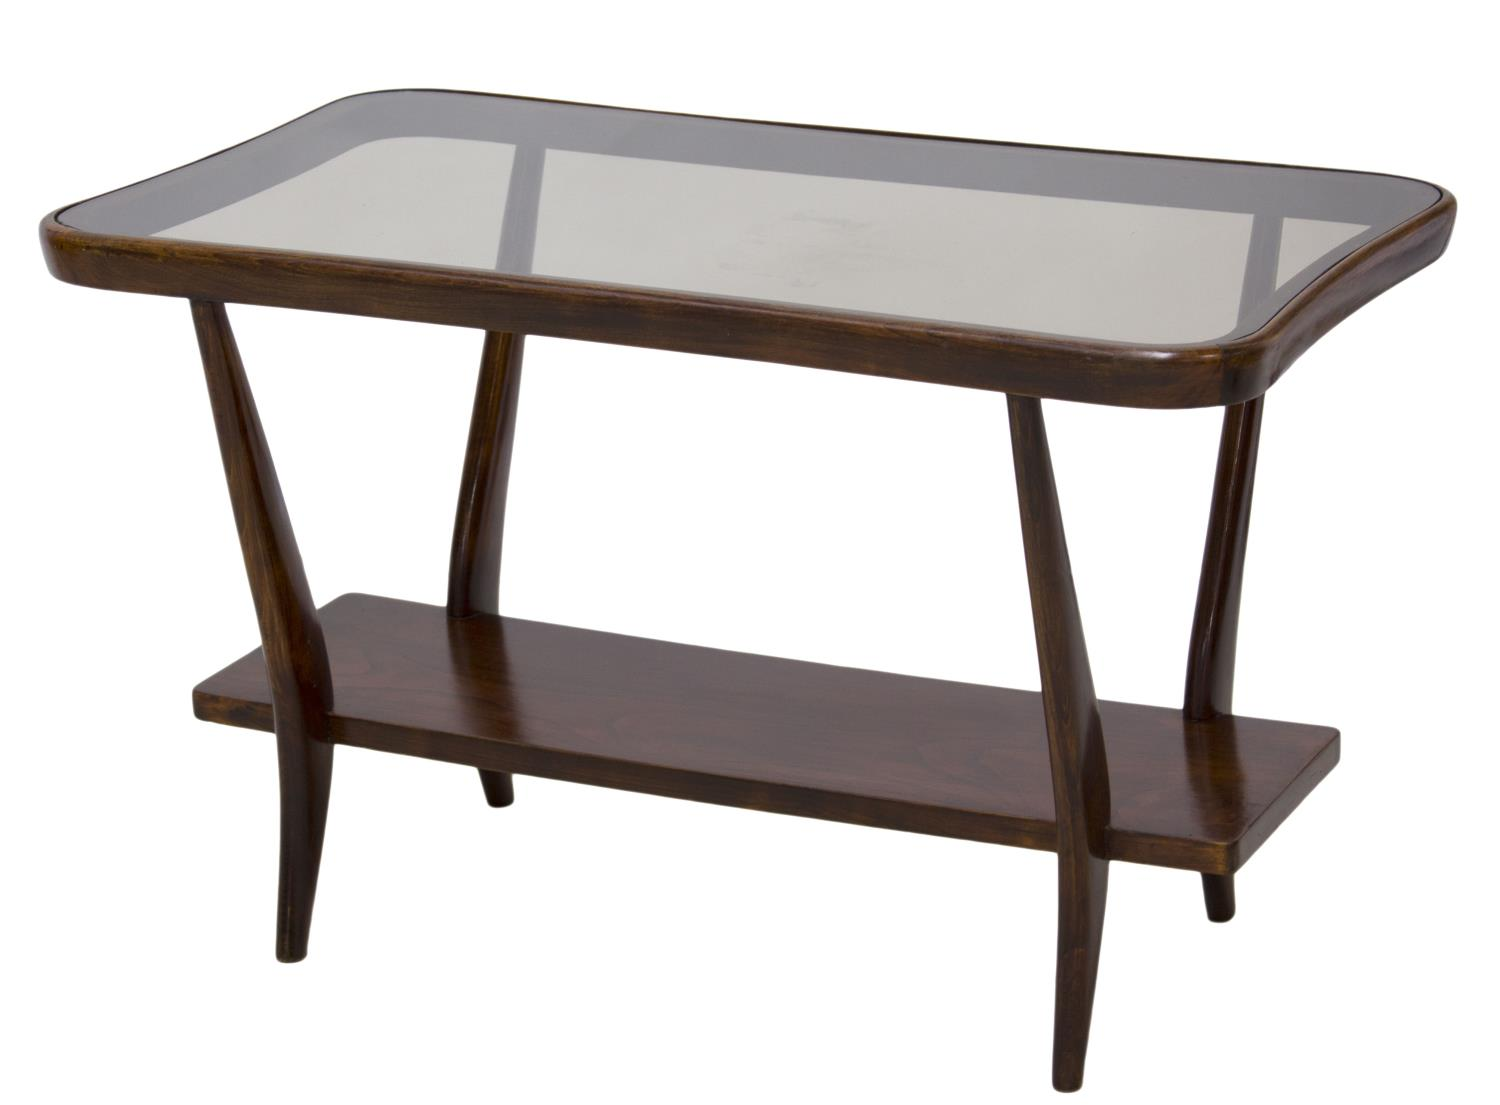 Italian Mid Century Modern Glass Top Coffee Table Italian Danish Mid Century Design Austin